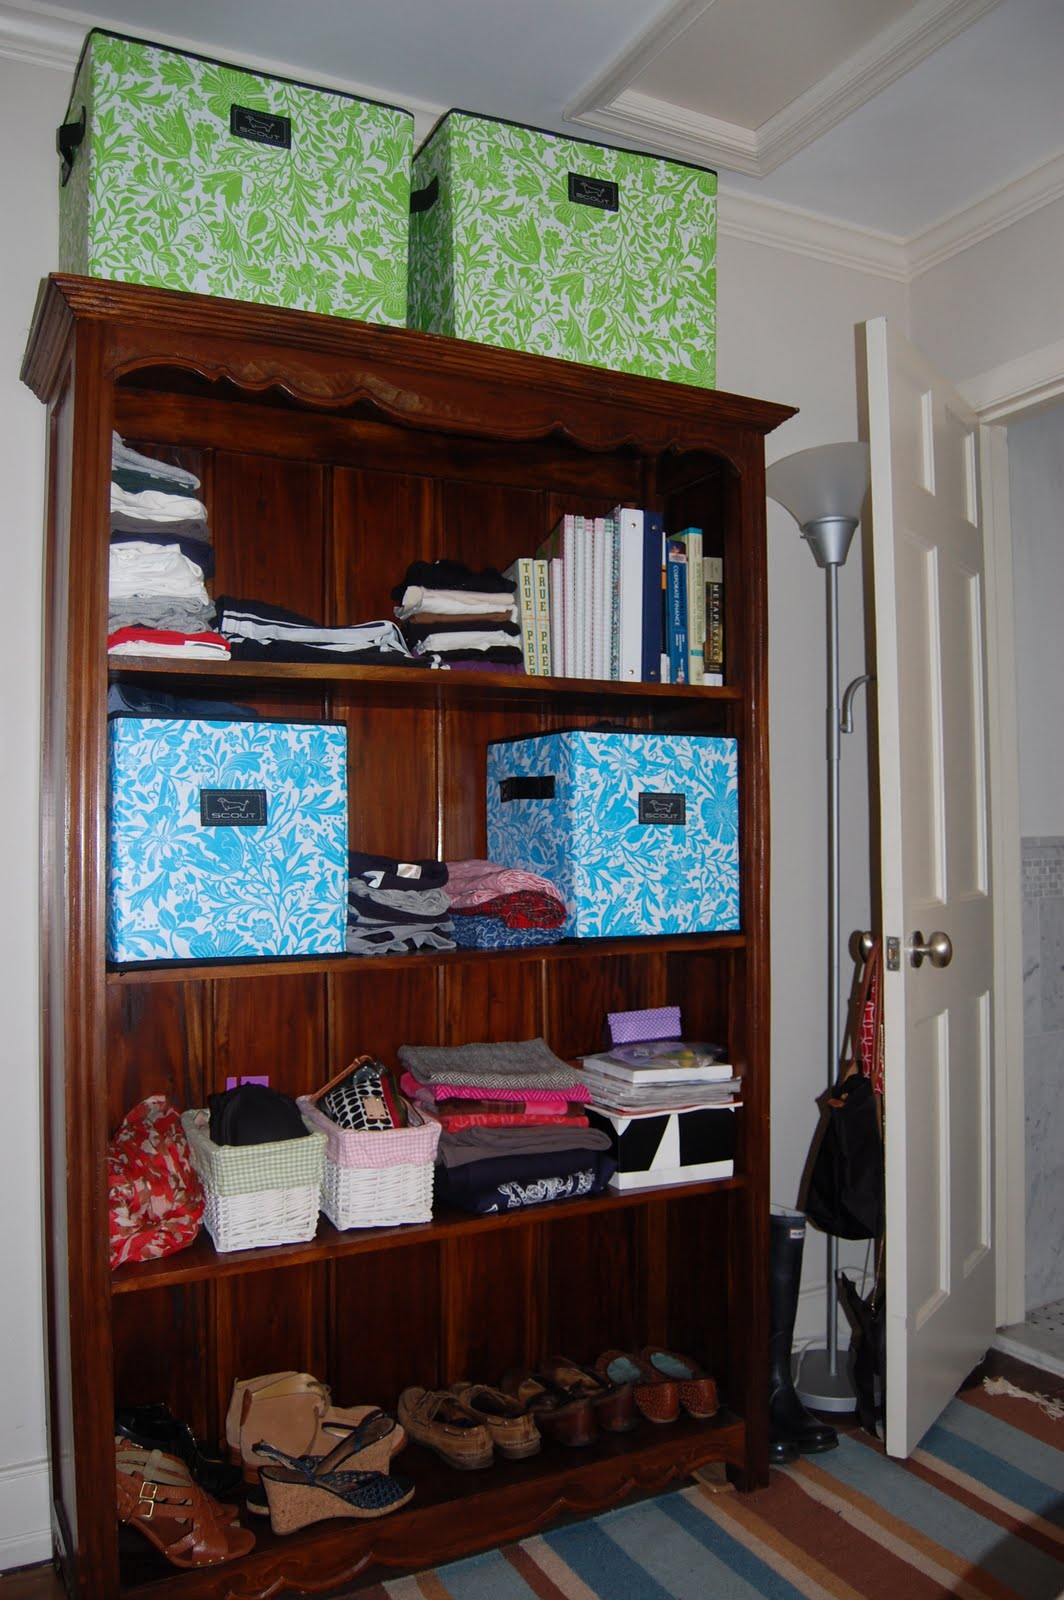 Organize please dorm room carly the prepster for Room organization